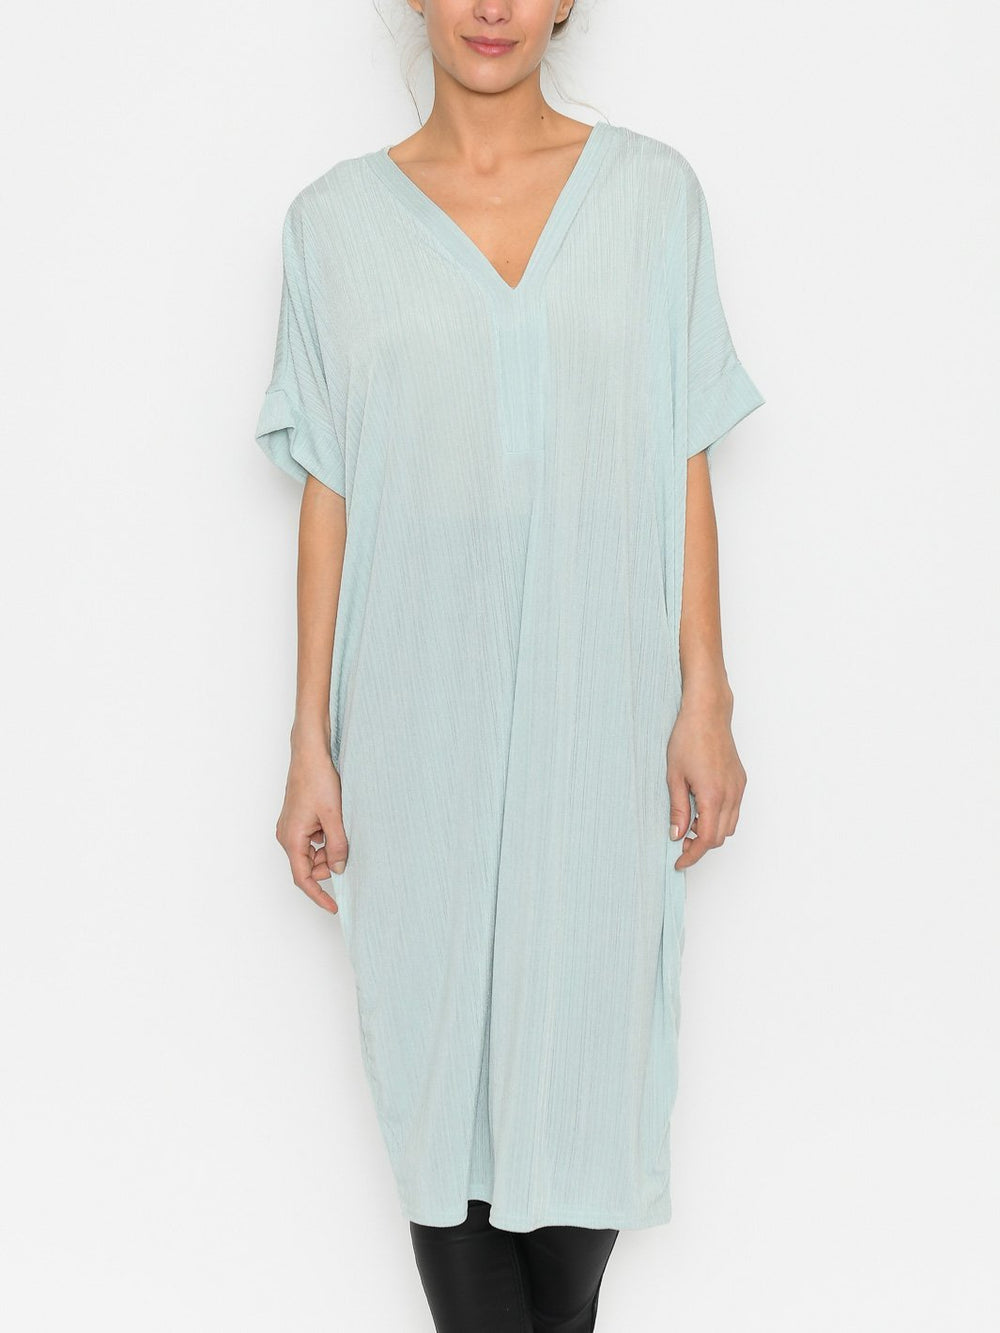 Mila dress mint - Online-Mode